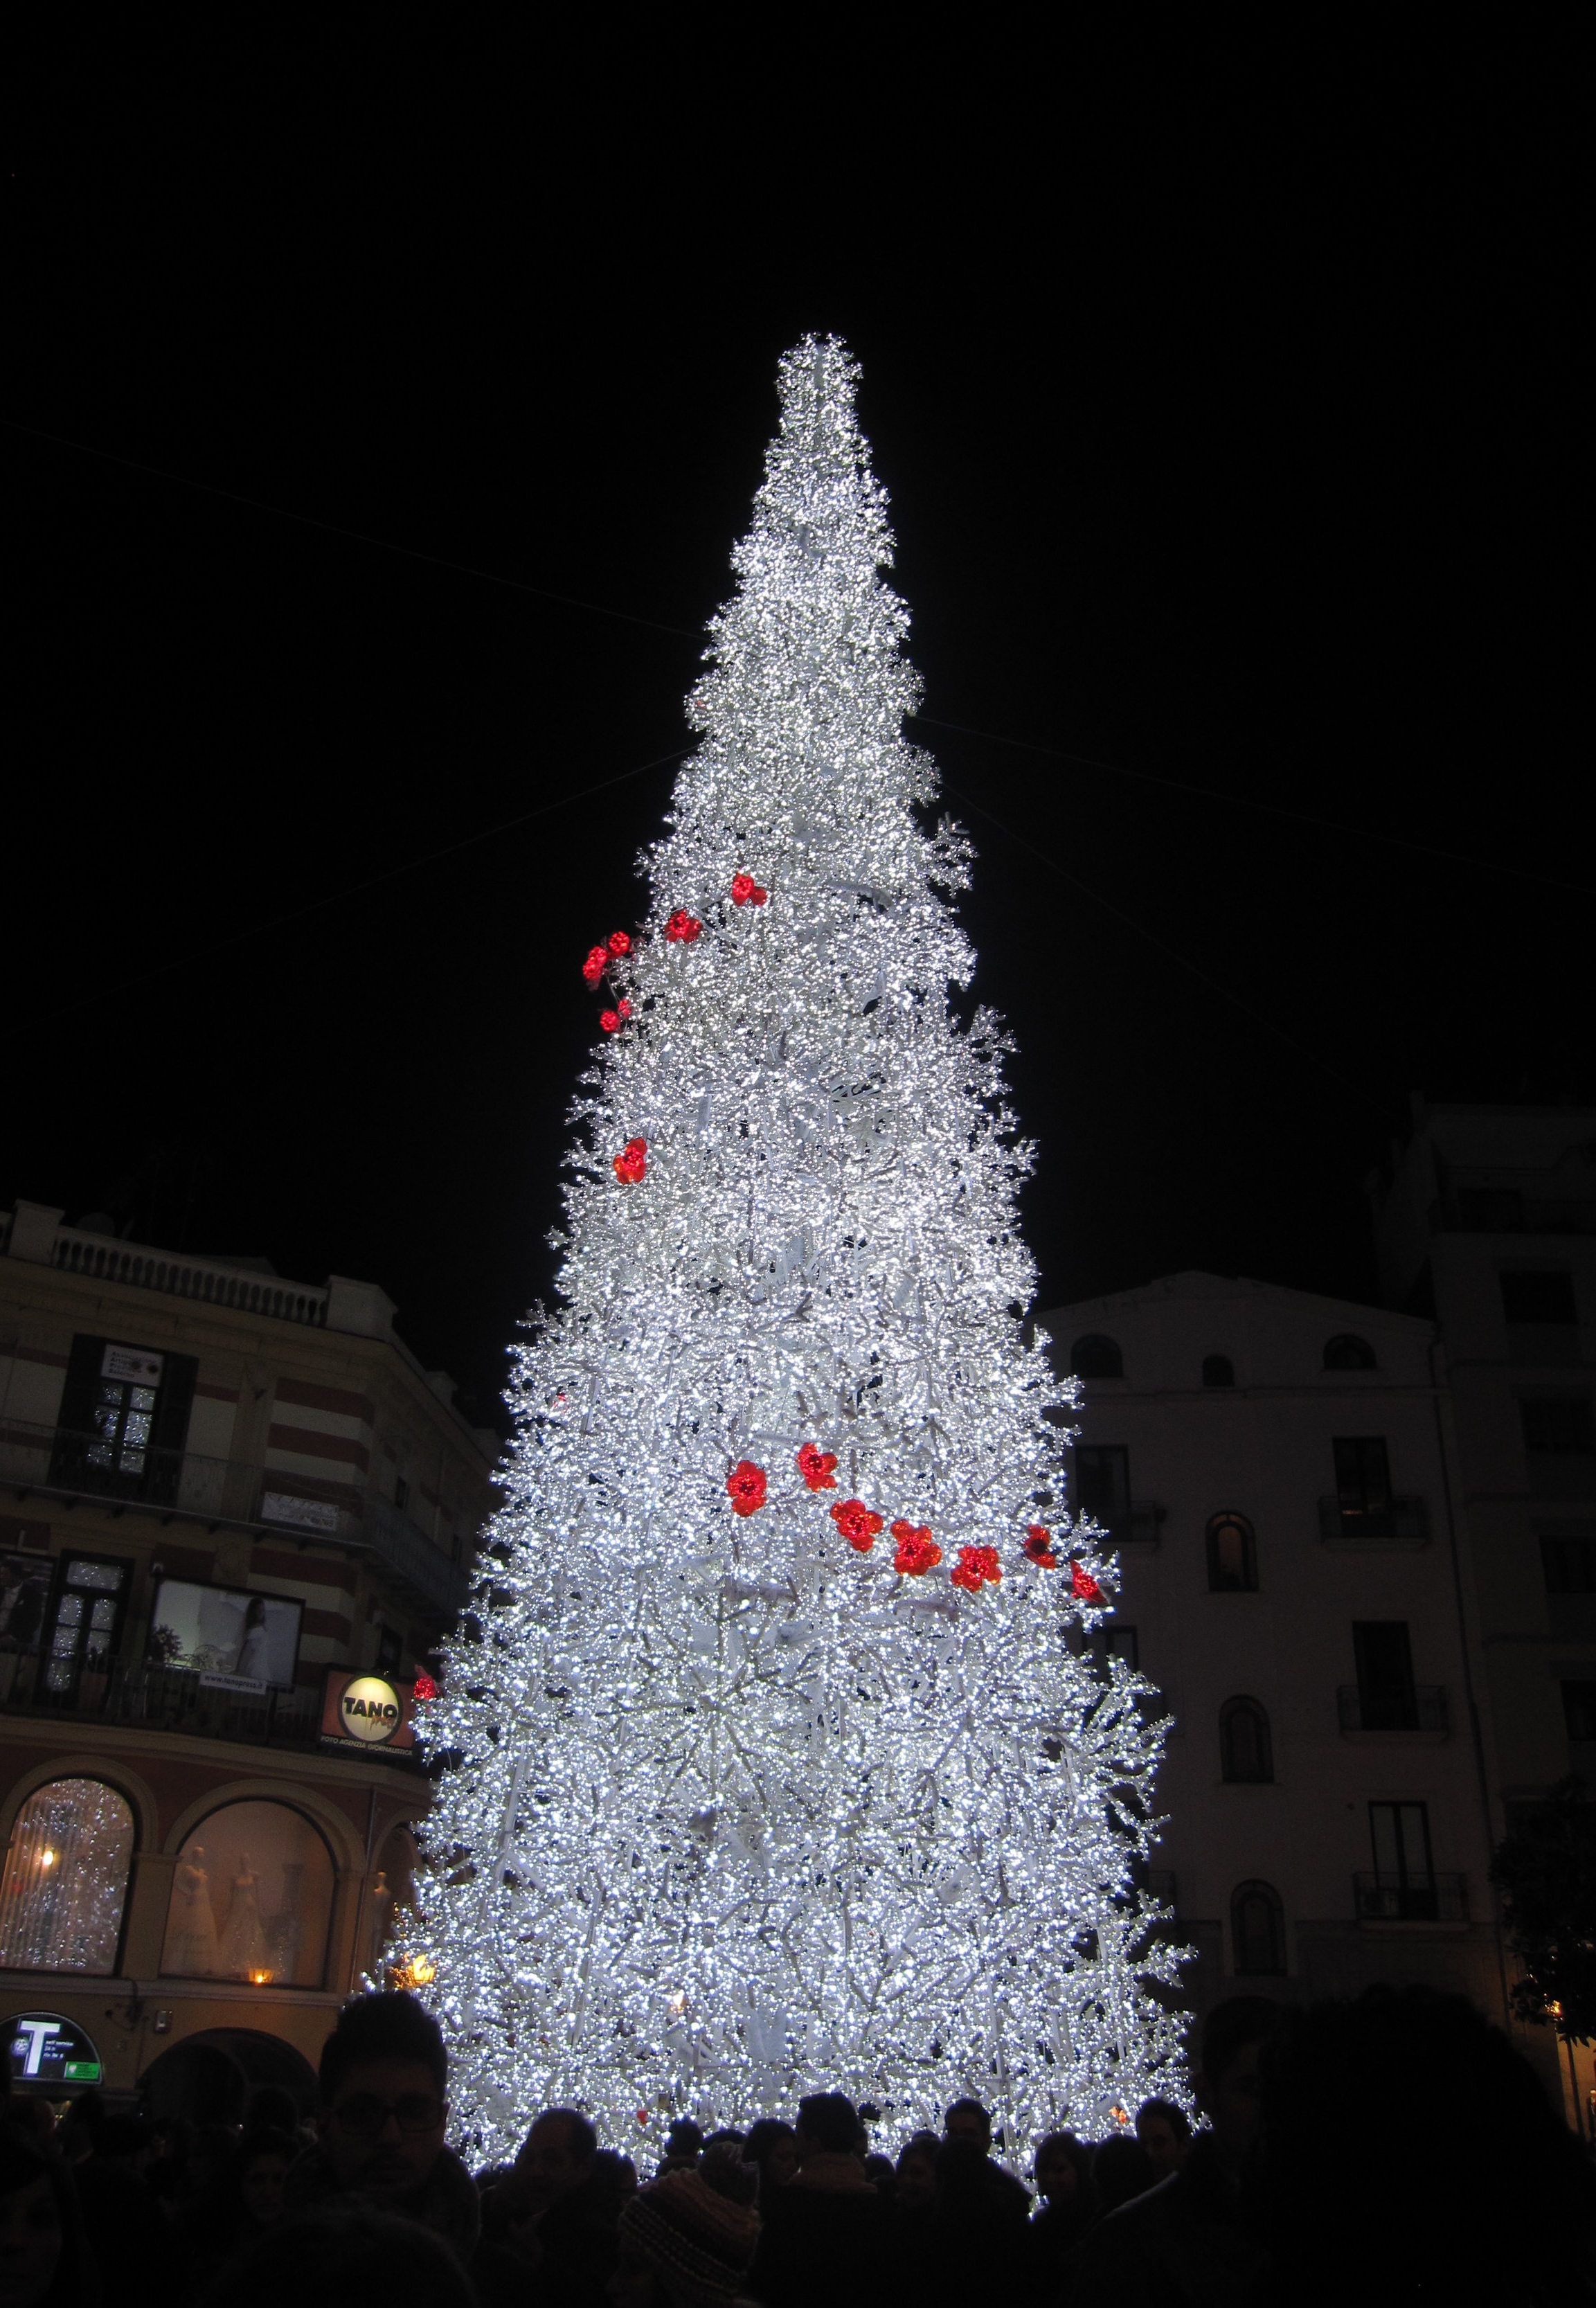 Christmas tree in Salerno.